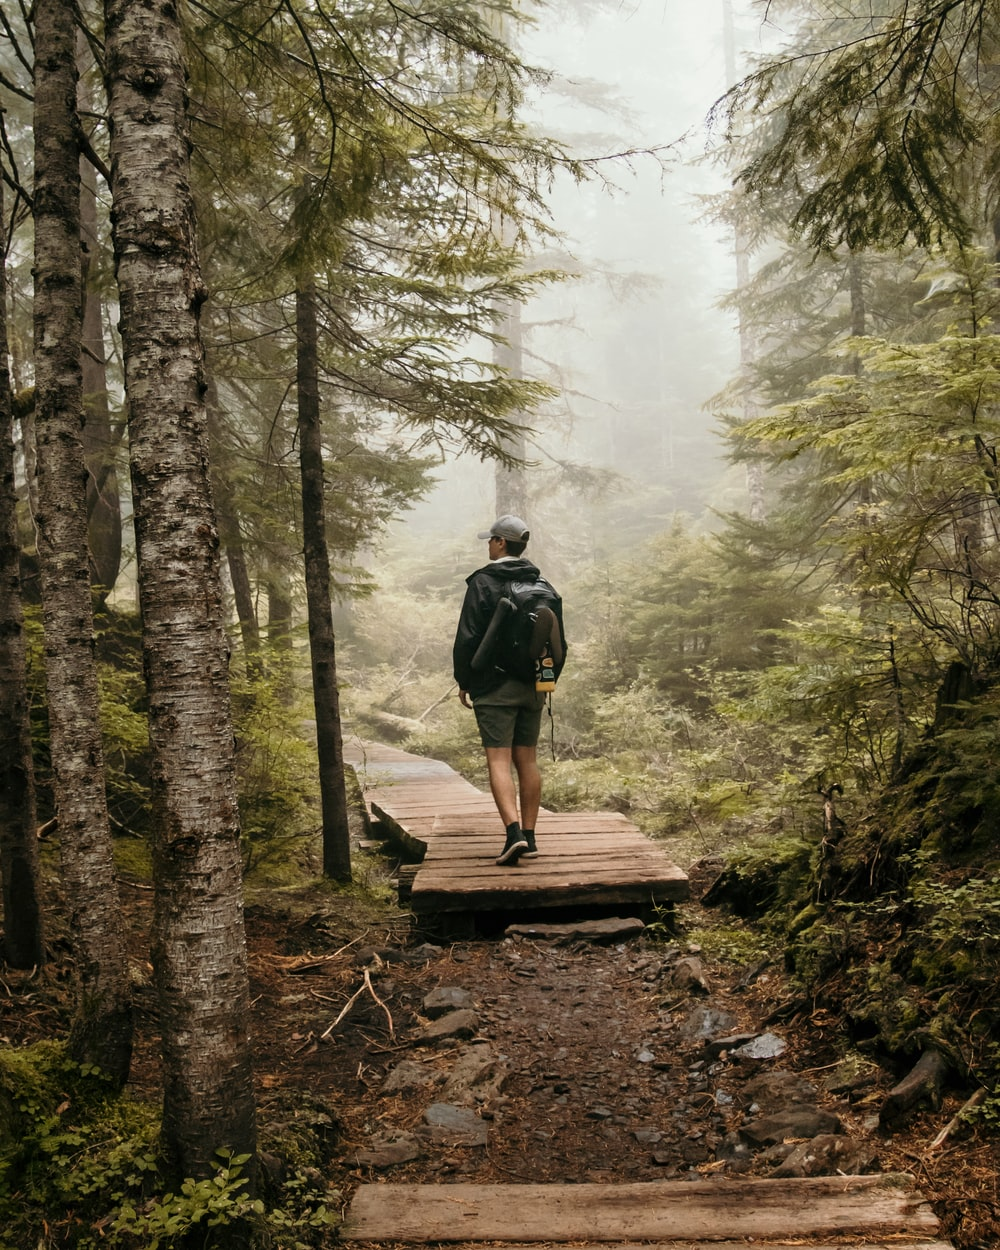 man in black backpack walking on brown wooden bridge in forest during daytime